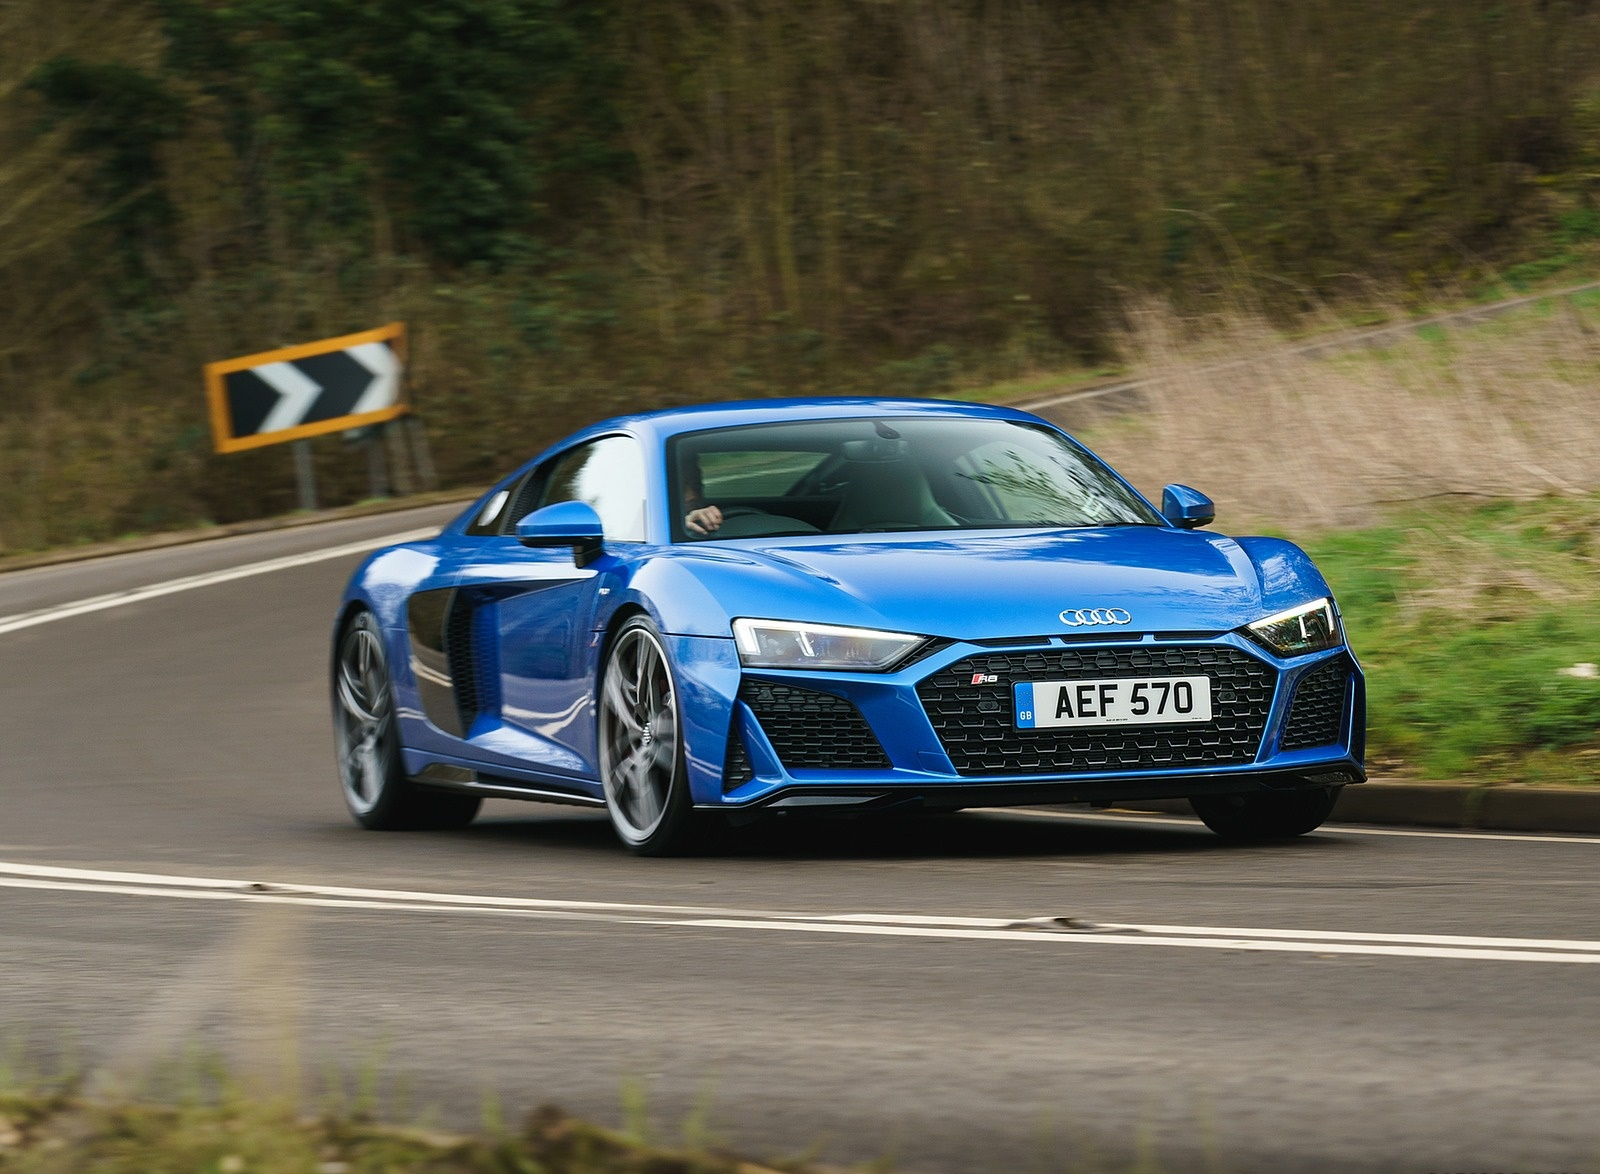 2019 Audi R8 V10 Coupe quattro (UK-Spec) Front Three-Quarter Wallpaper (3)